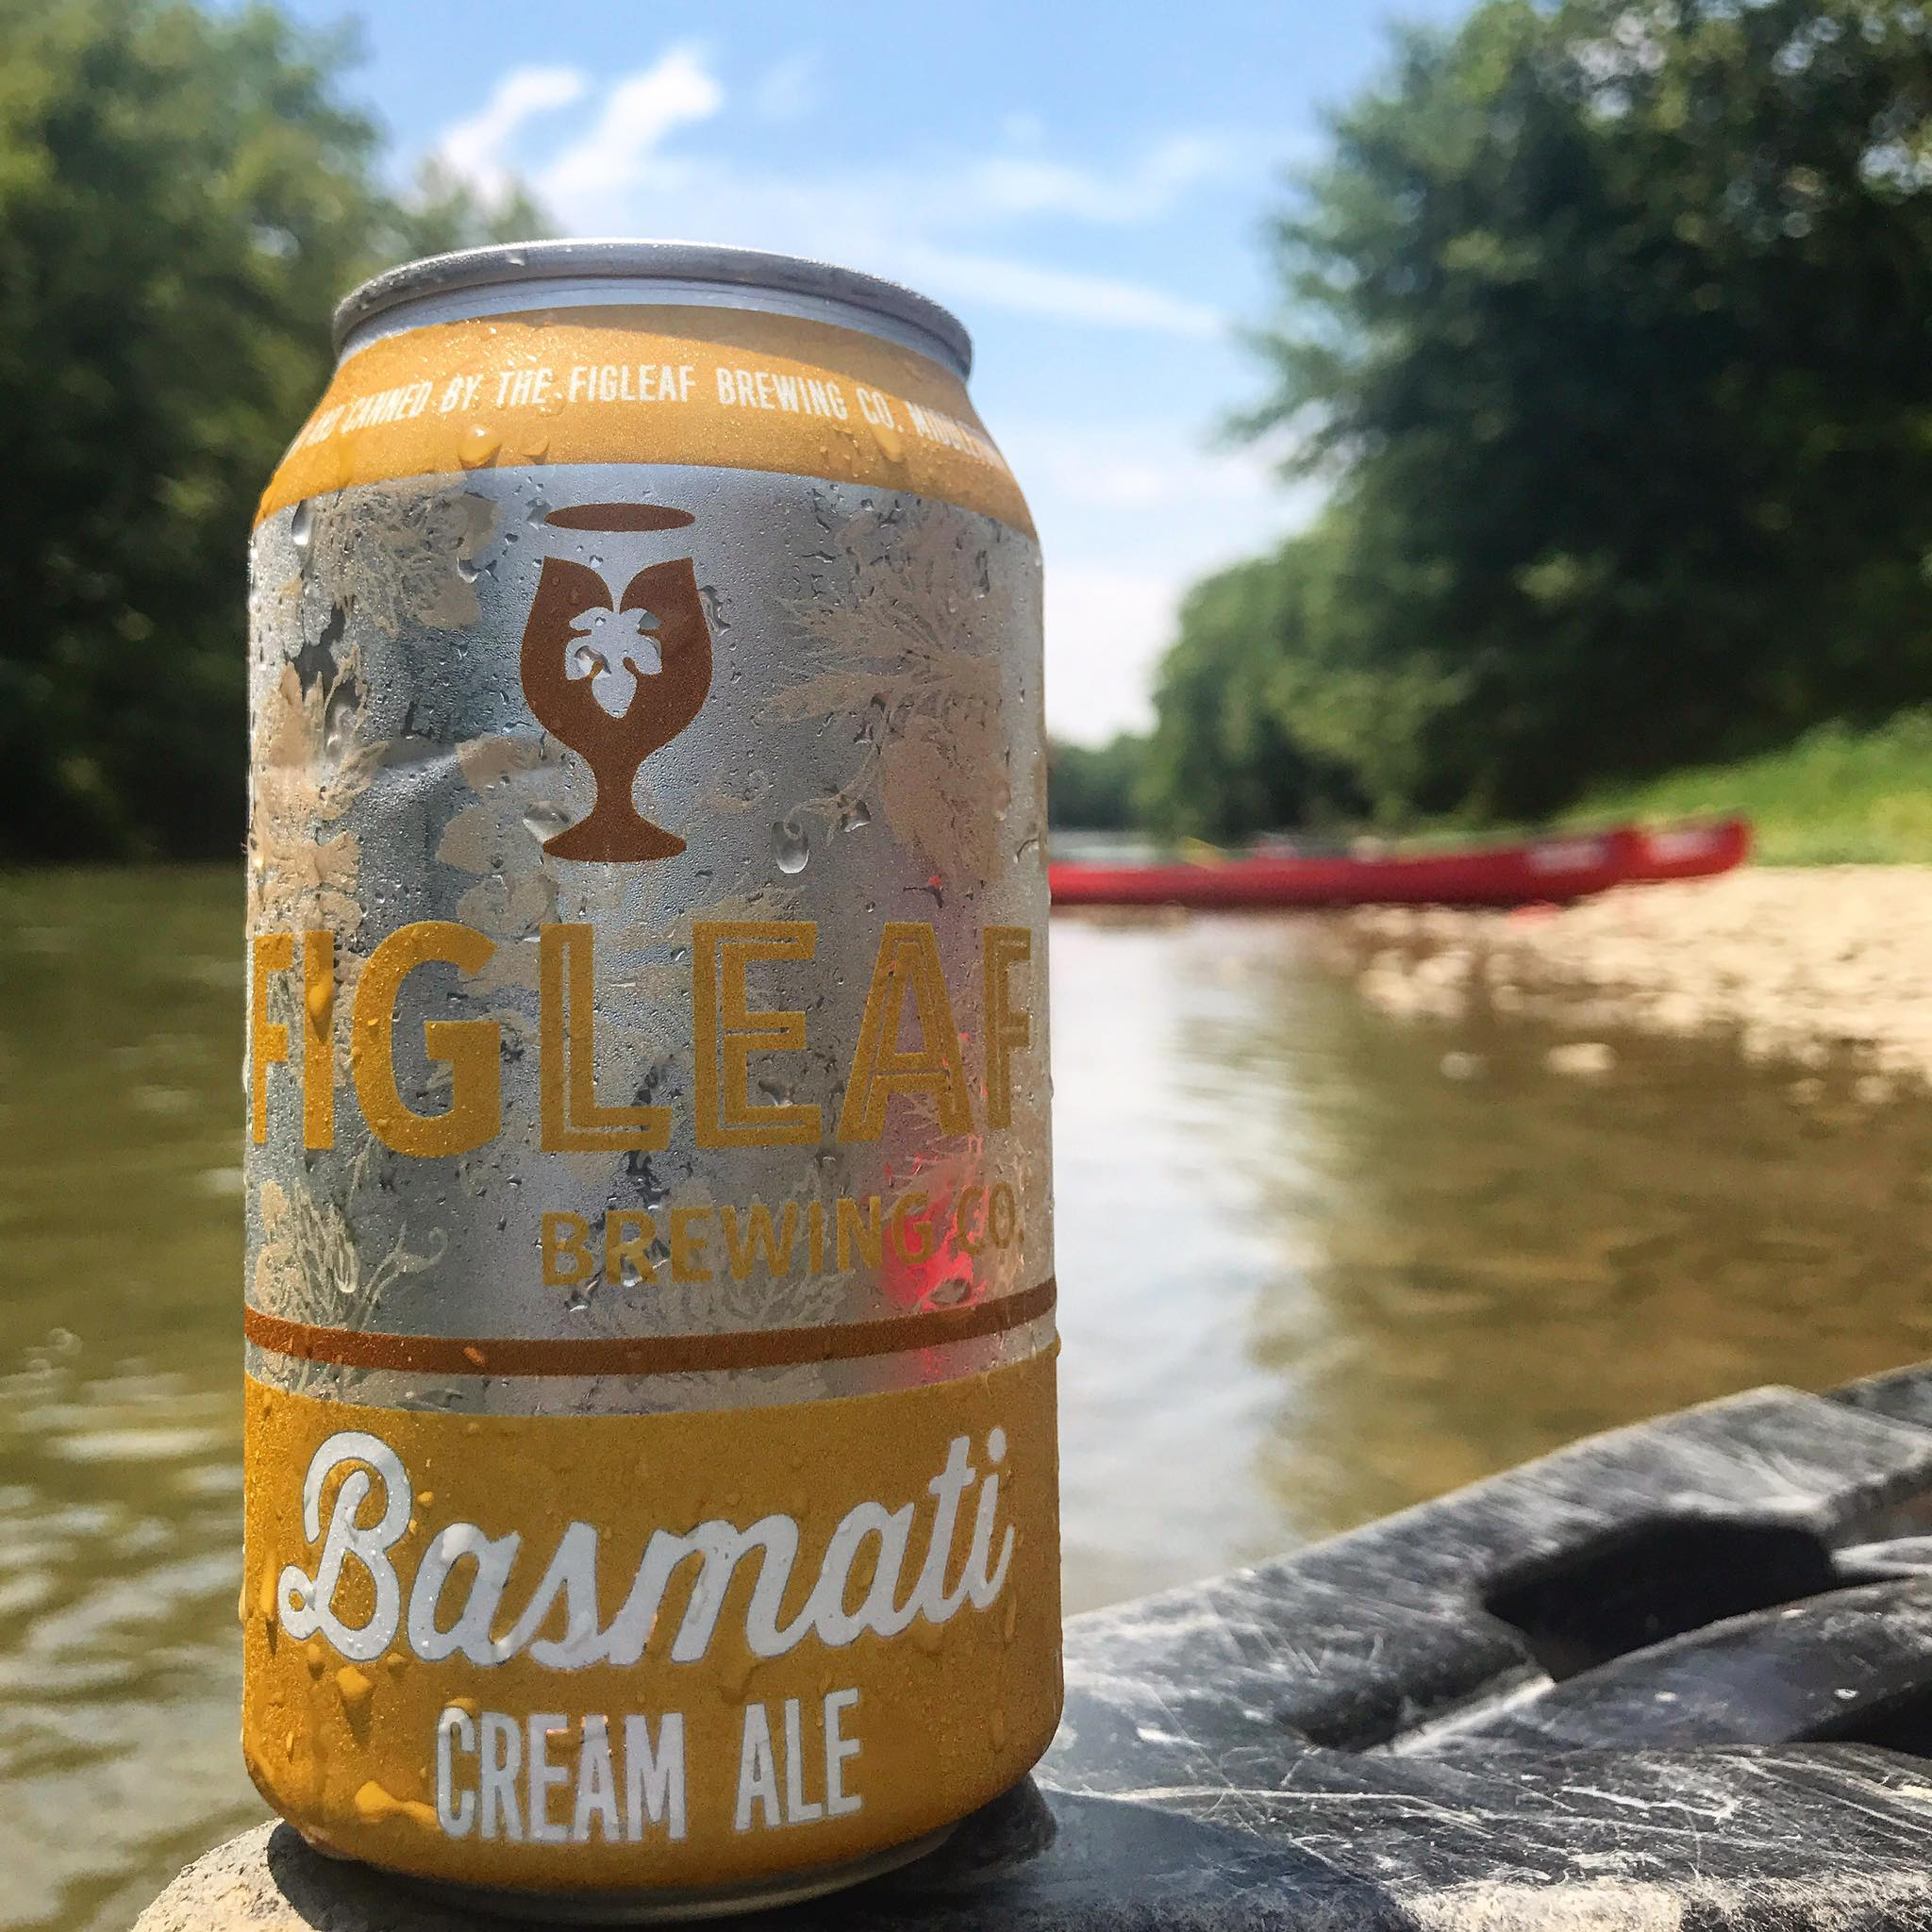 Basmati Cream Ale / Image courtesy of FigLeaf Brewing // Published: 1.28.18